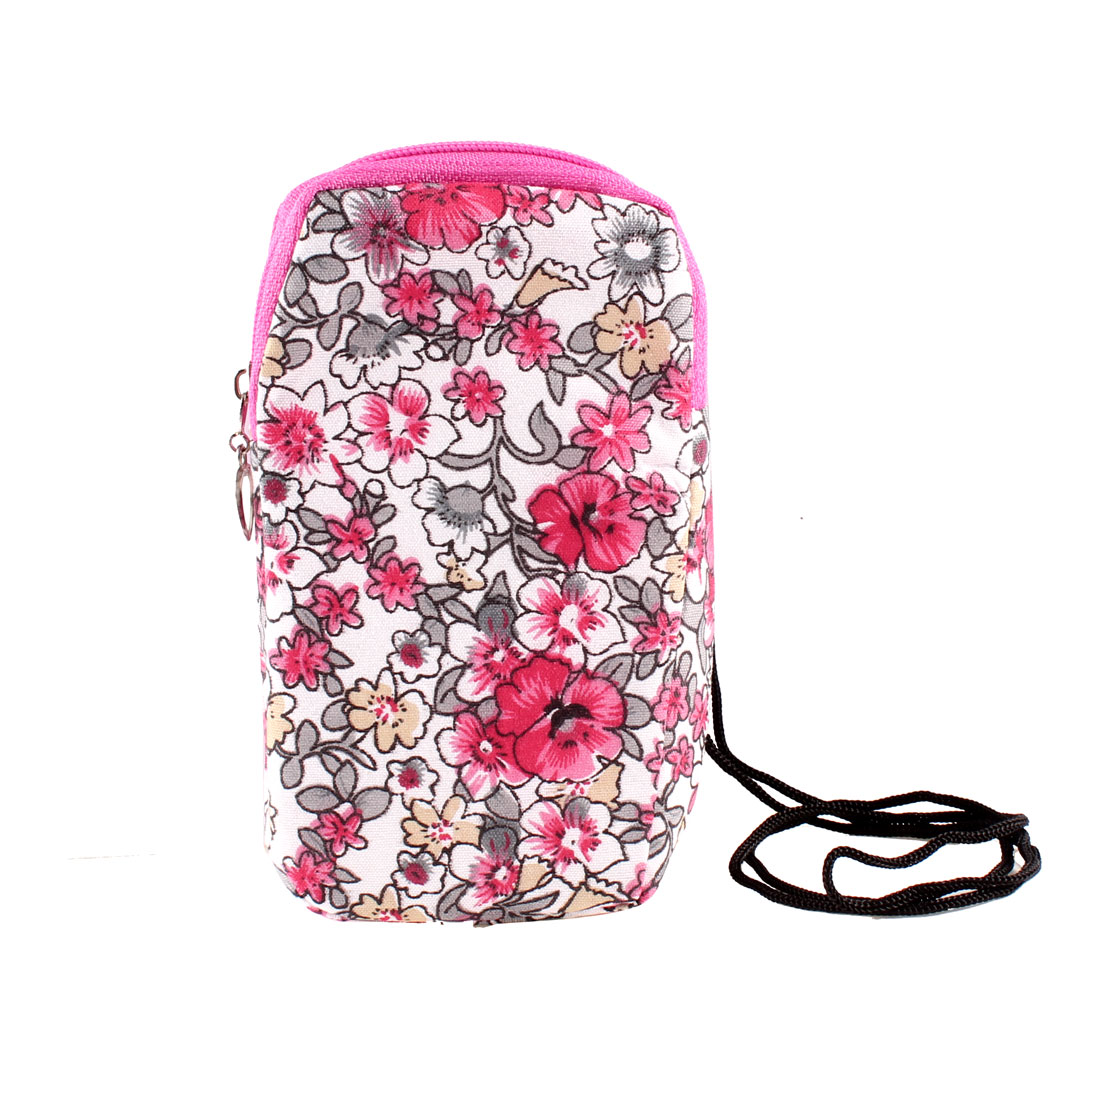 Red Gray Flowers Printed 2 Compartments Zip Up Phone Wrist Bag Holder